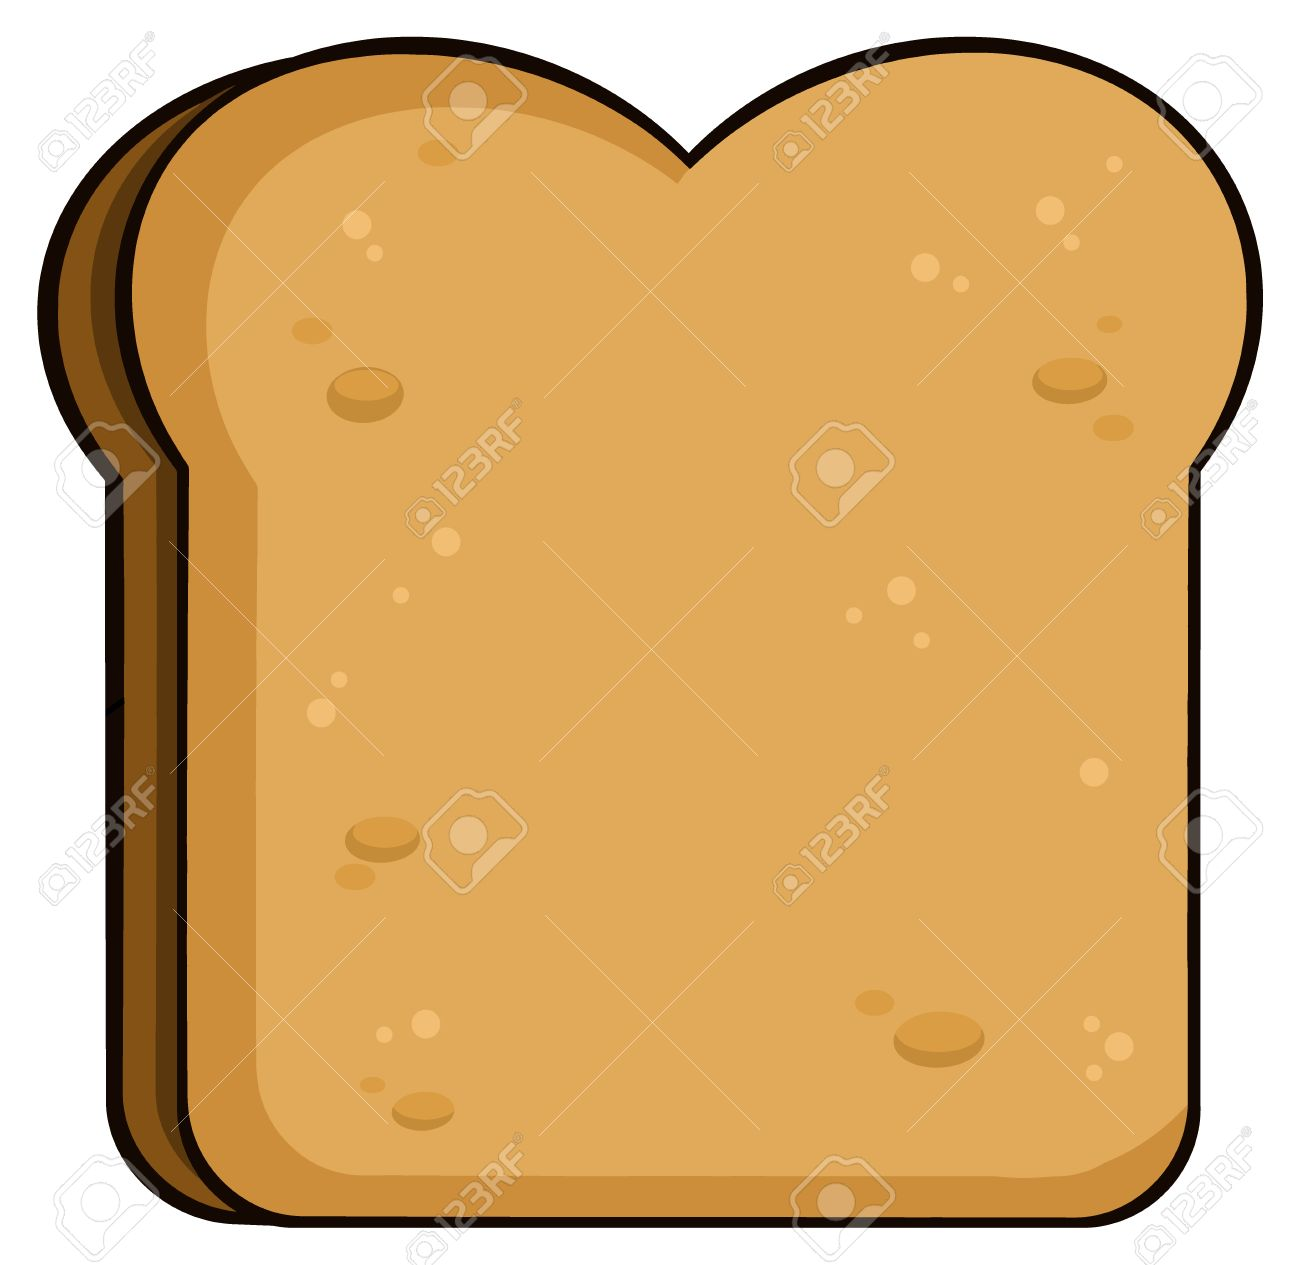 Image result for cartoon toast images